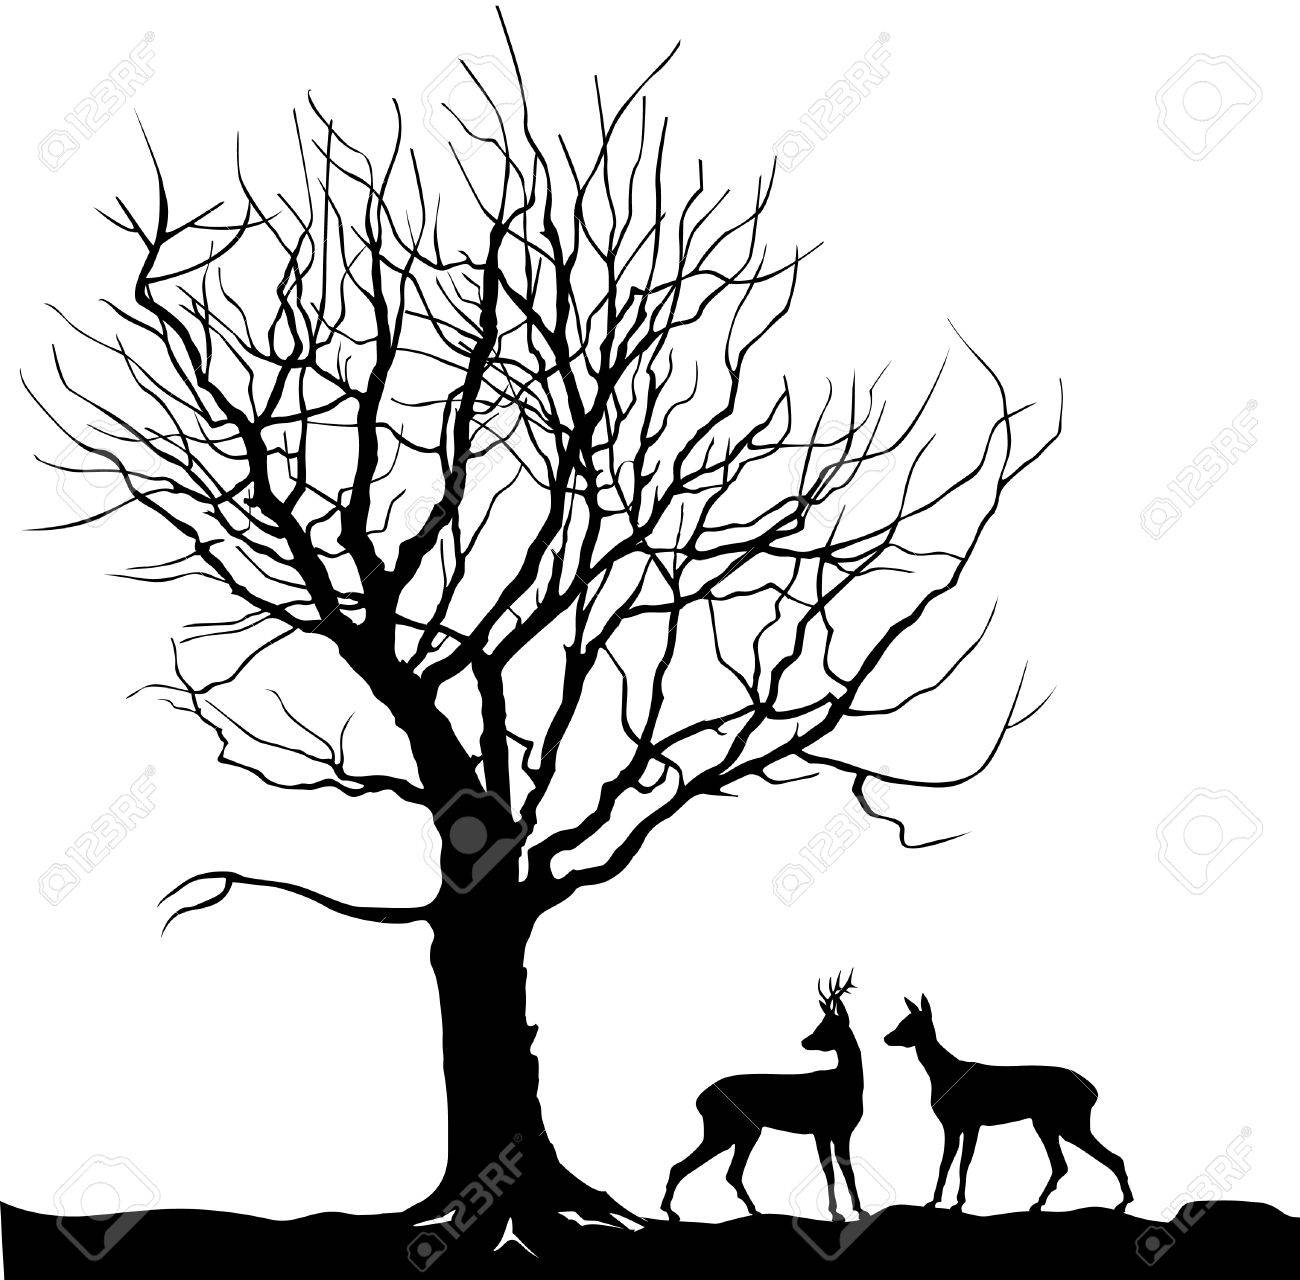 1300x1280 Animal Over Tree Forest Landscape With Deer. Abstract Vector